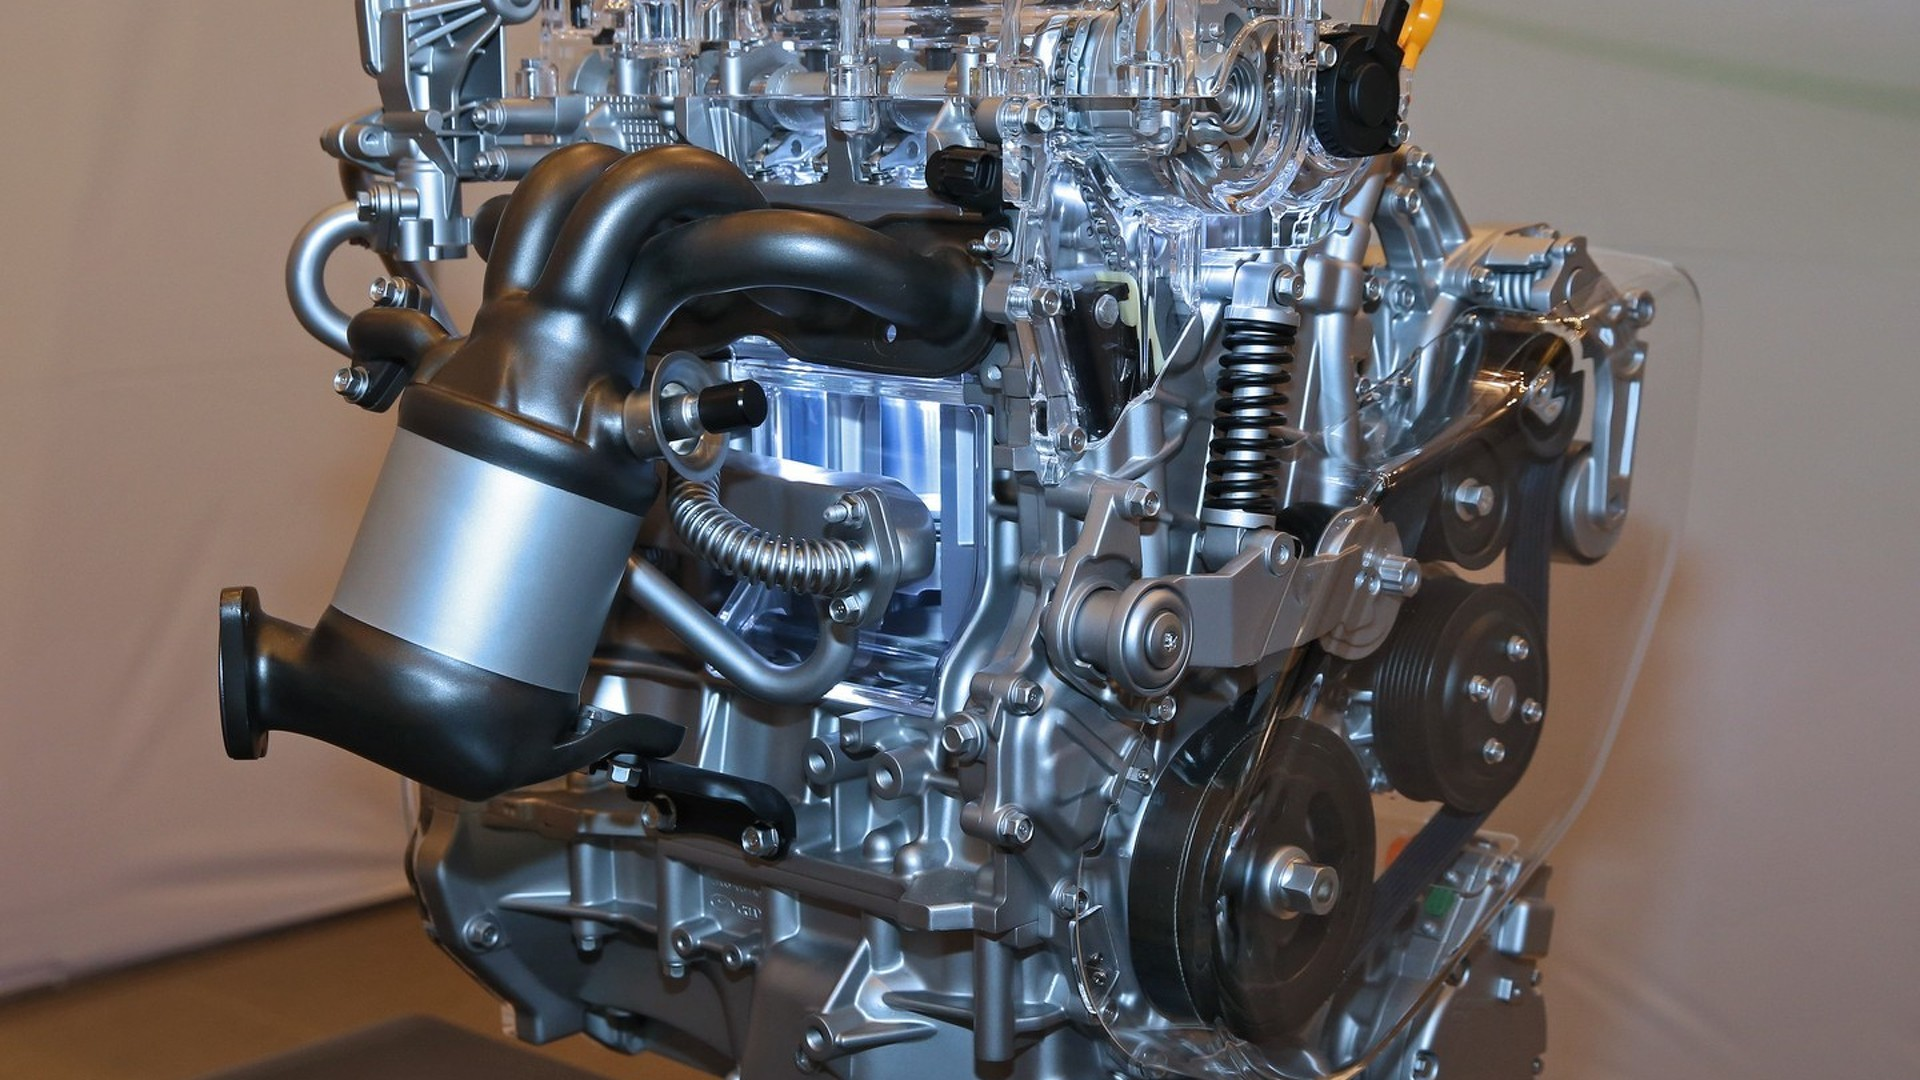 Hyundai reveals dedicated 1 6-liter GDI engine for its Prius rival